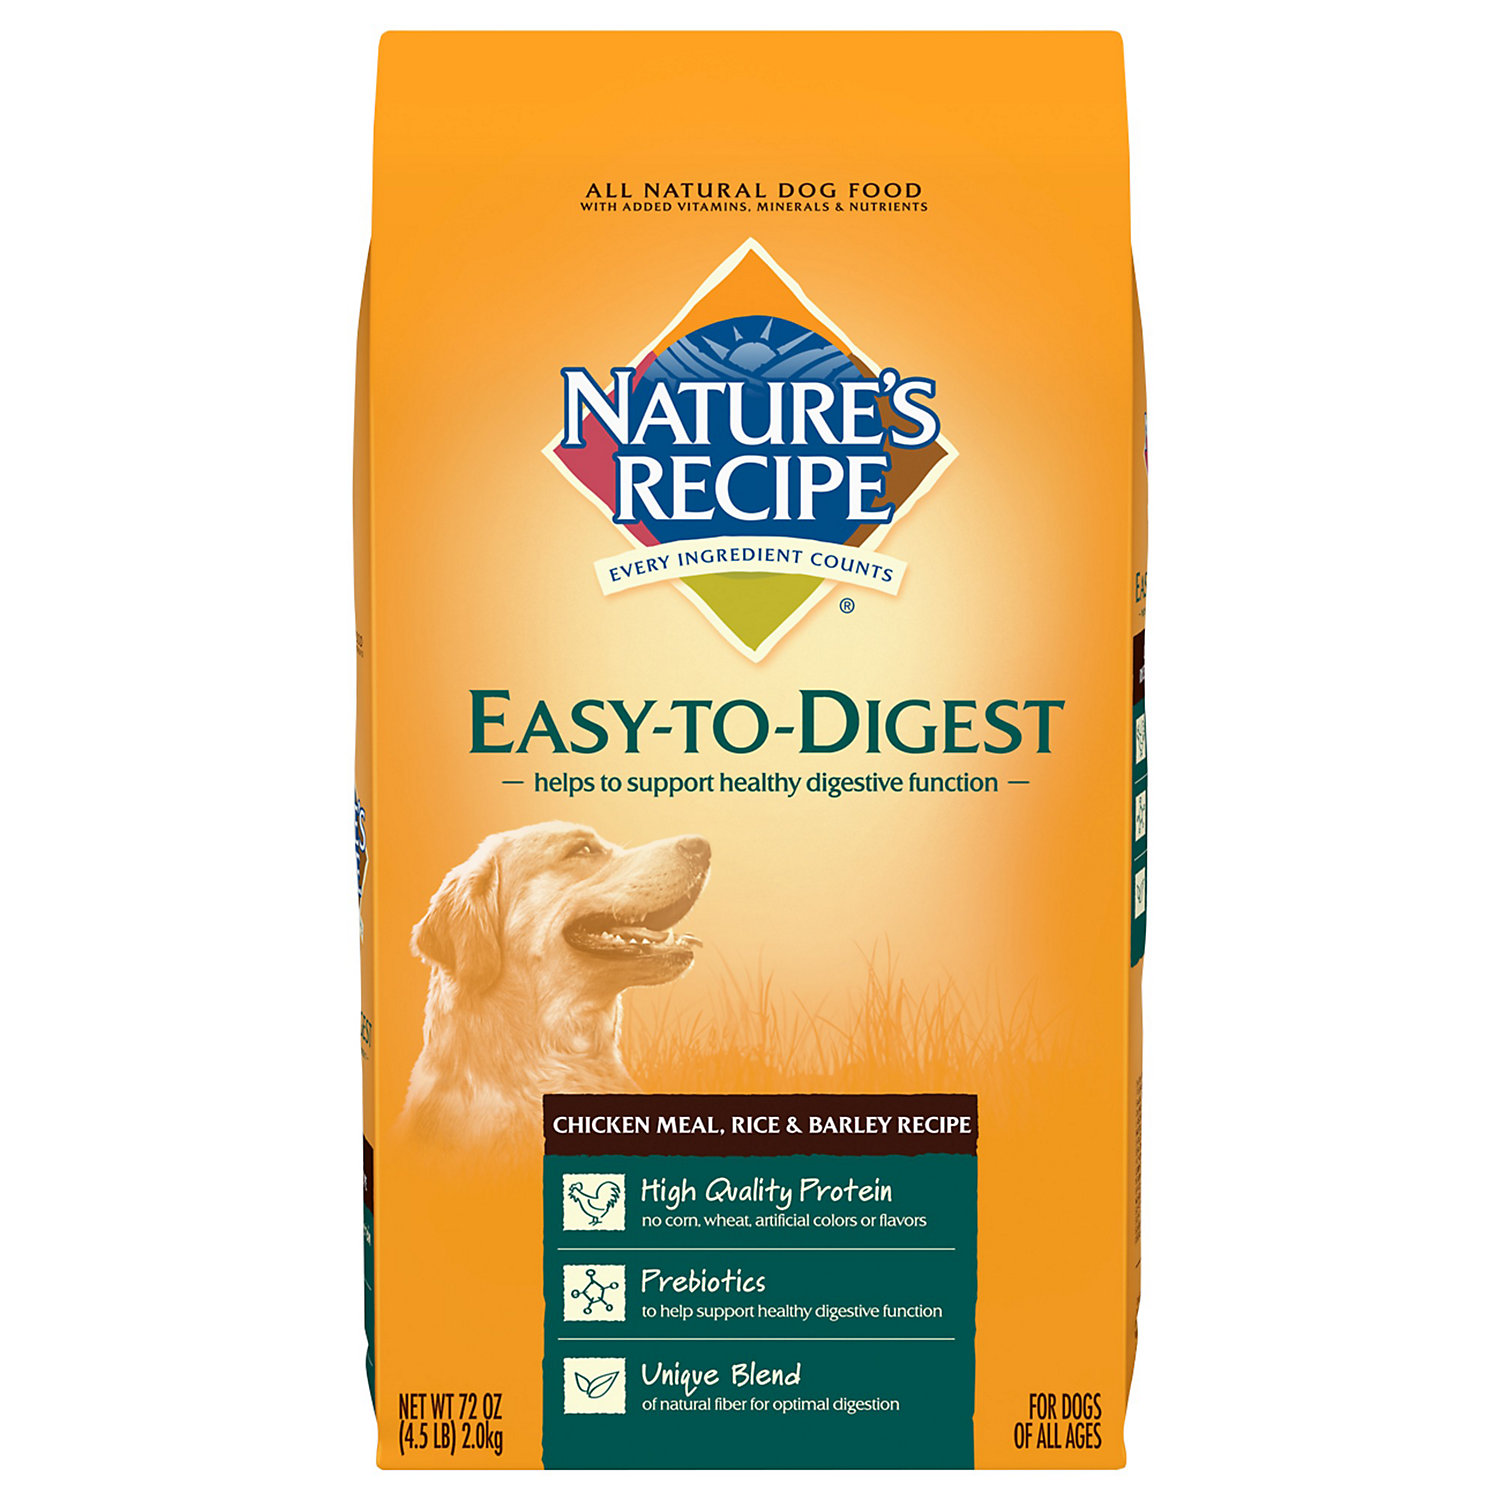 Nature's Recipe Easy to Digest Chicken Meal, Rice & Barley R